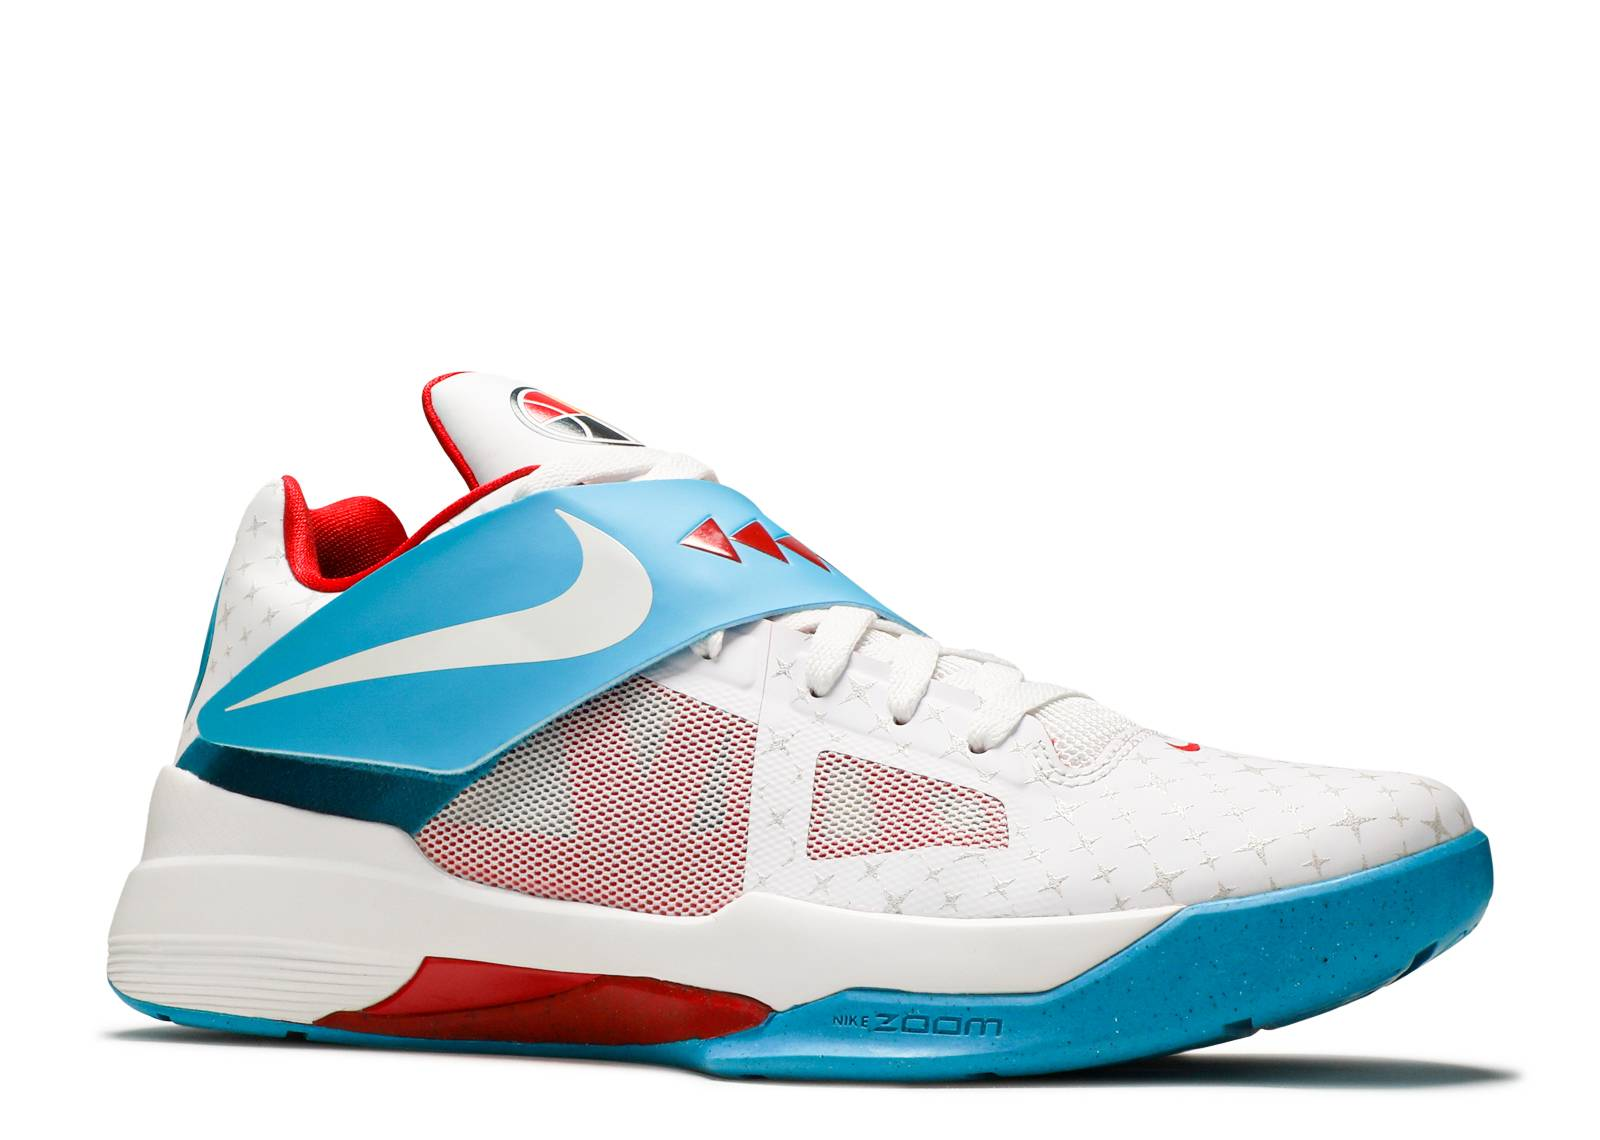 Kd N7 13 White Lebron X Low For Youth   Traffic School Online